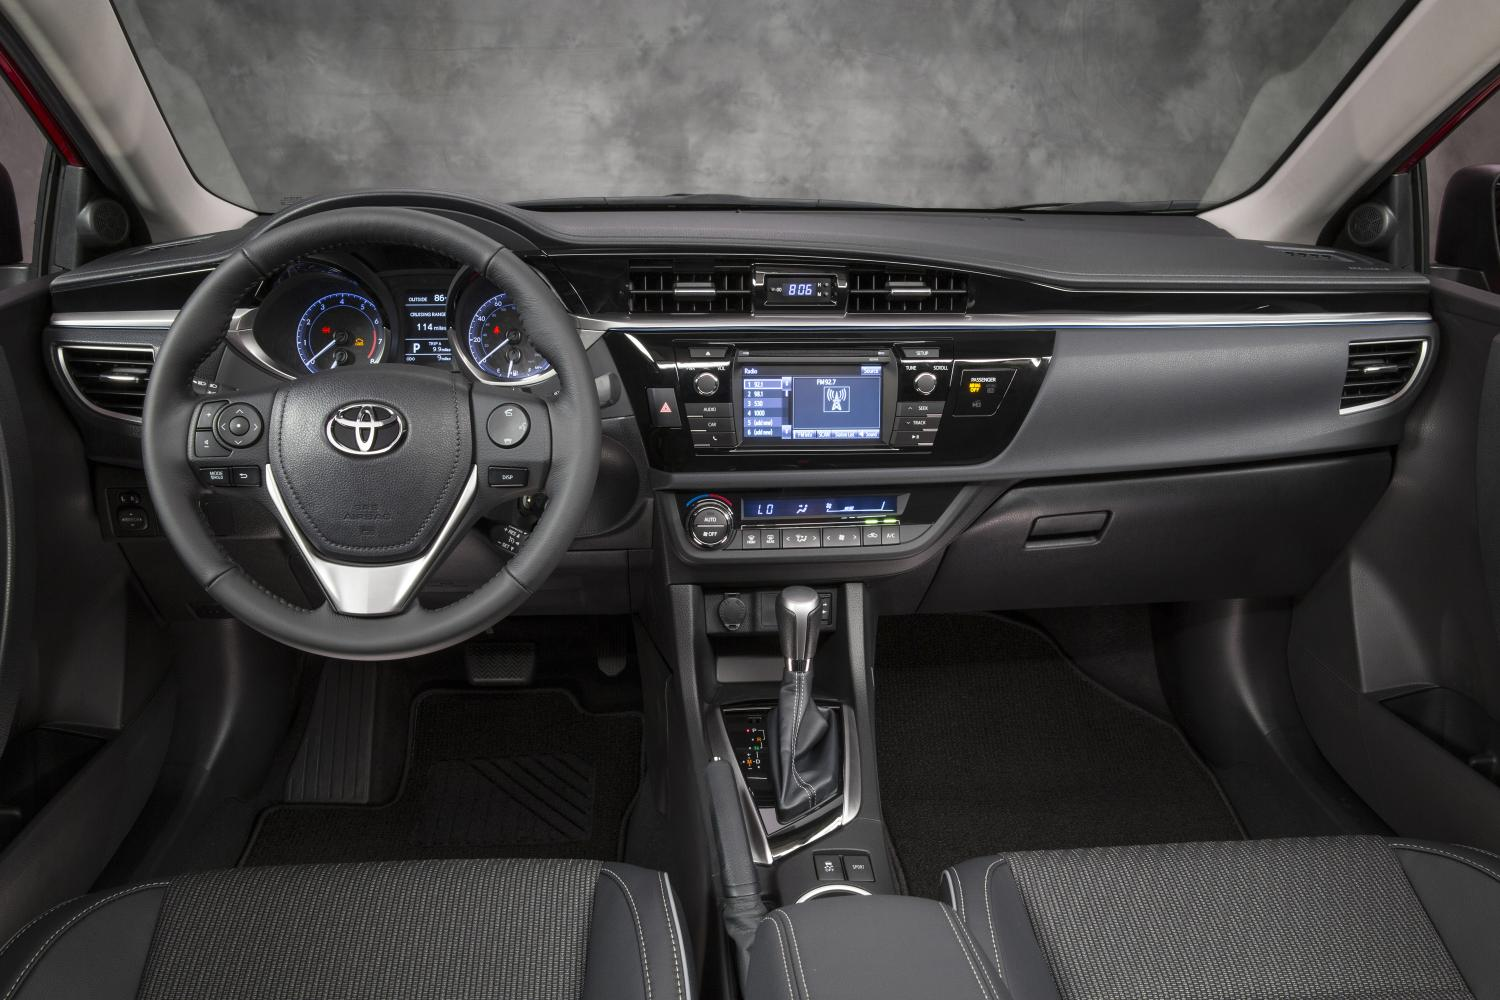 Check Out the 2014 Toyota Corolla New Interior